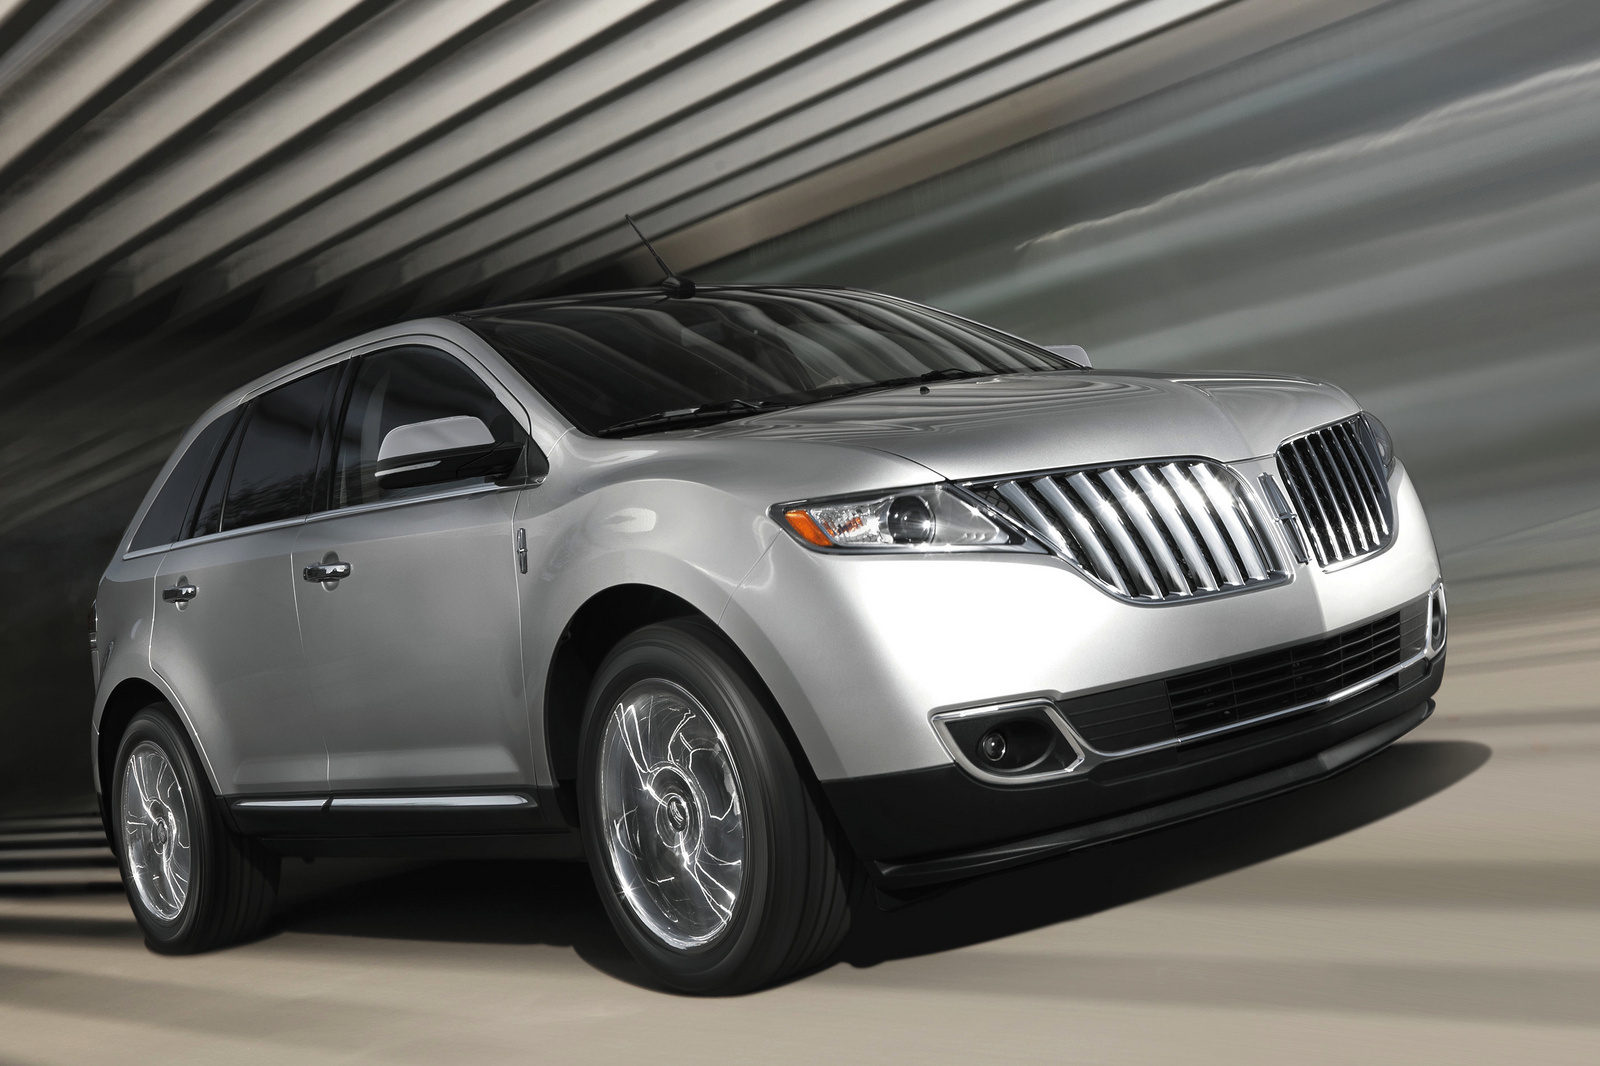 2014 Lincoln MKX - Overview - CarGurus